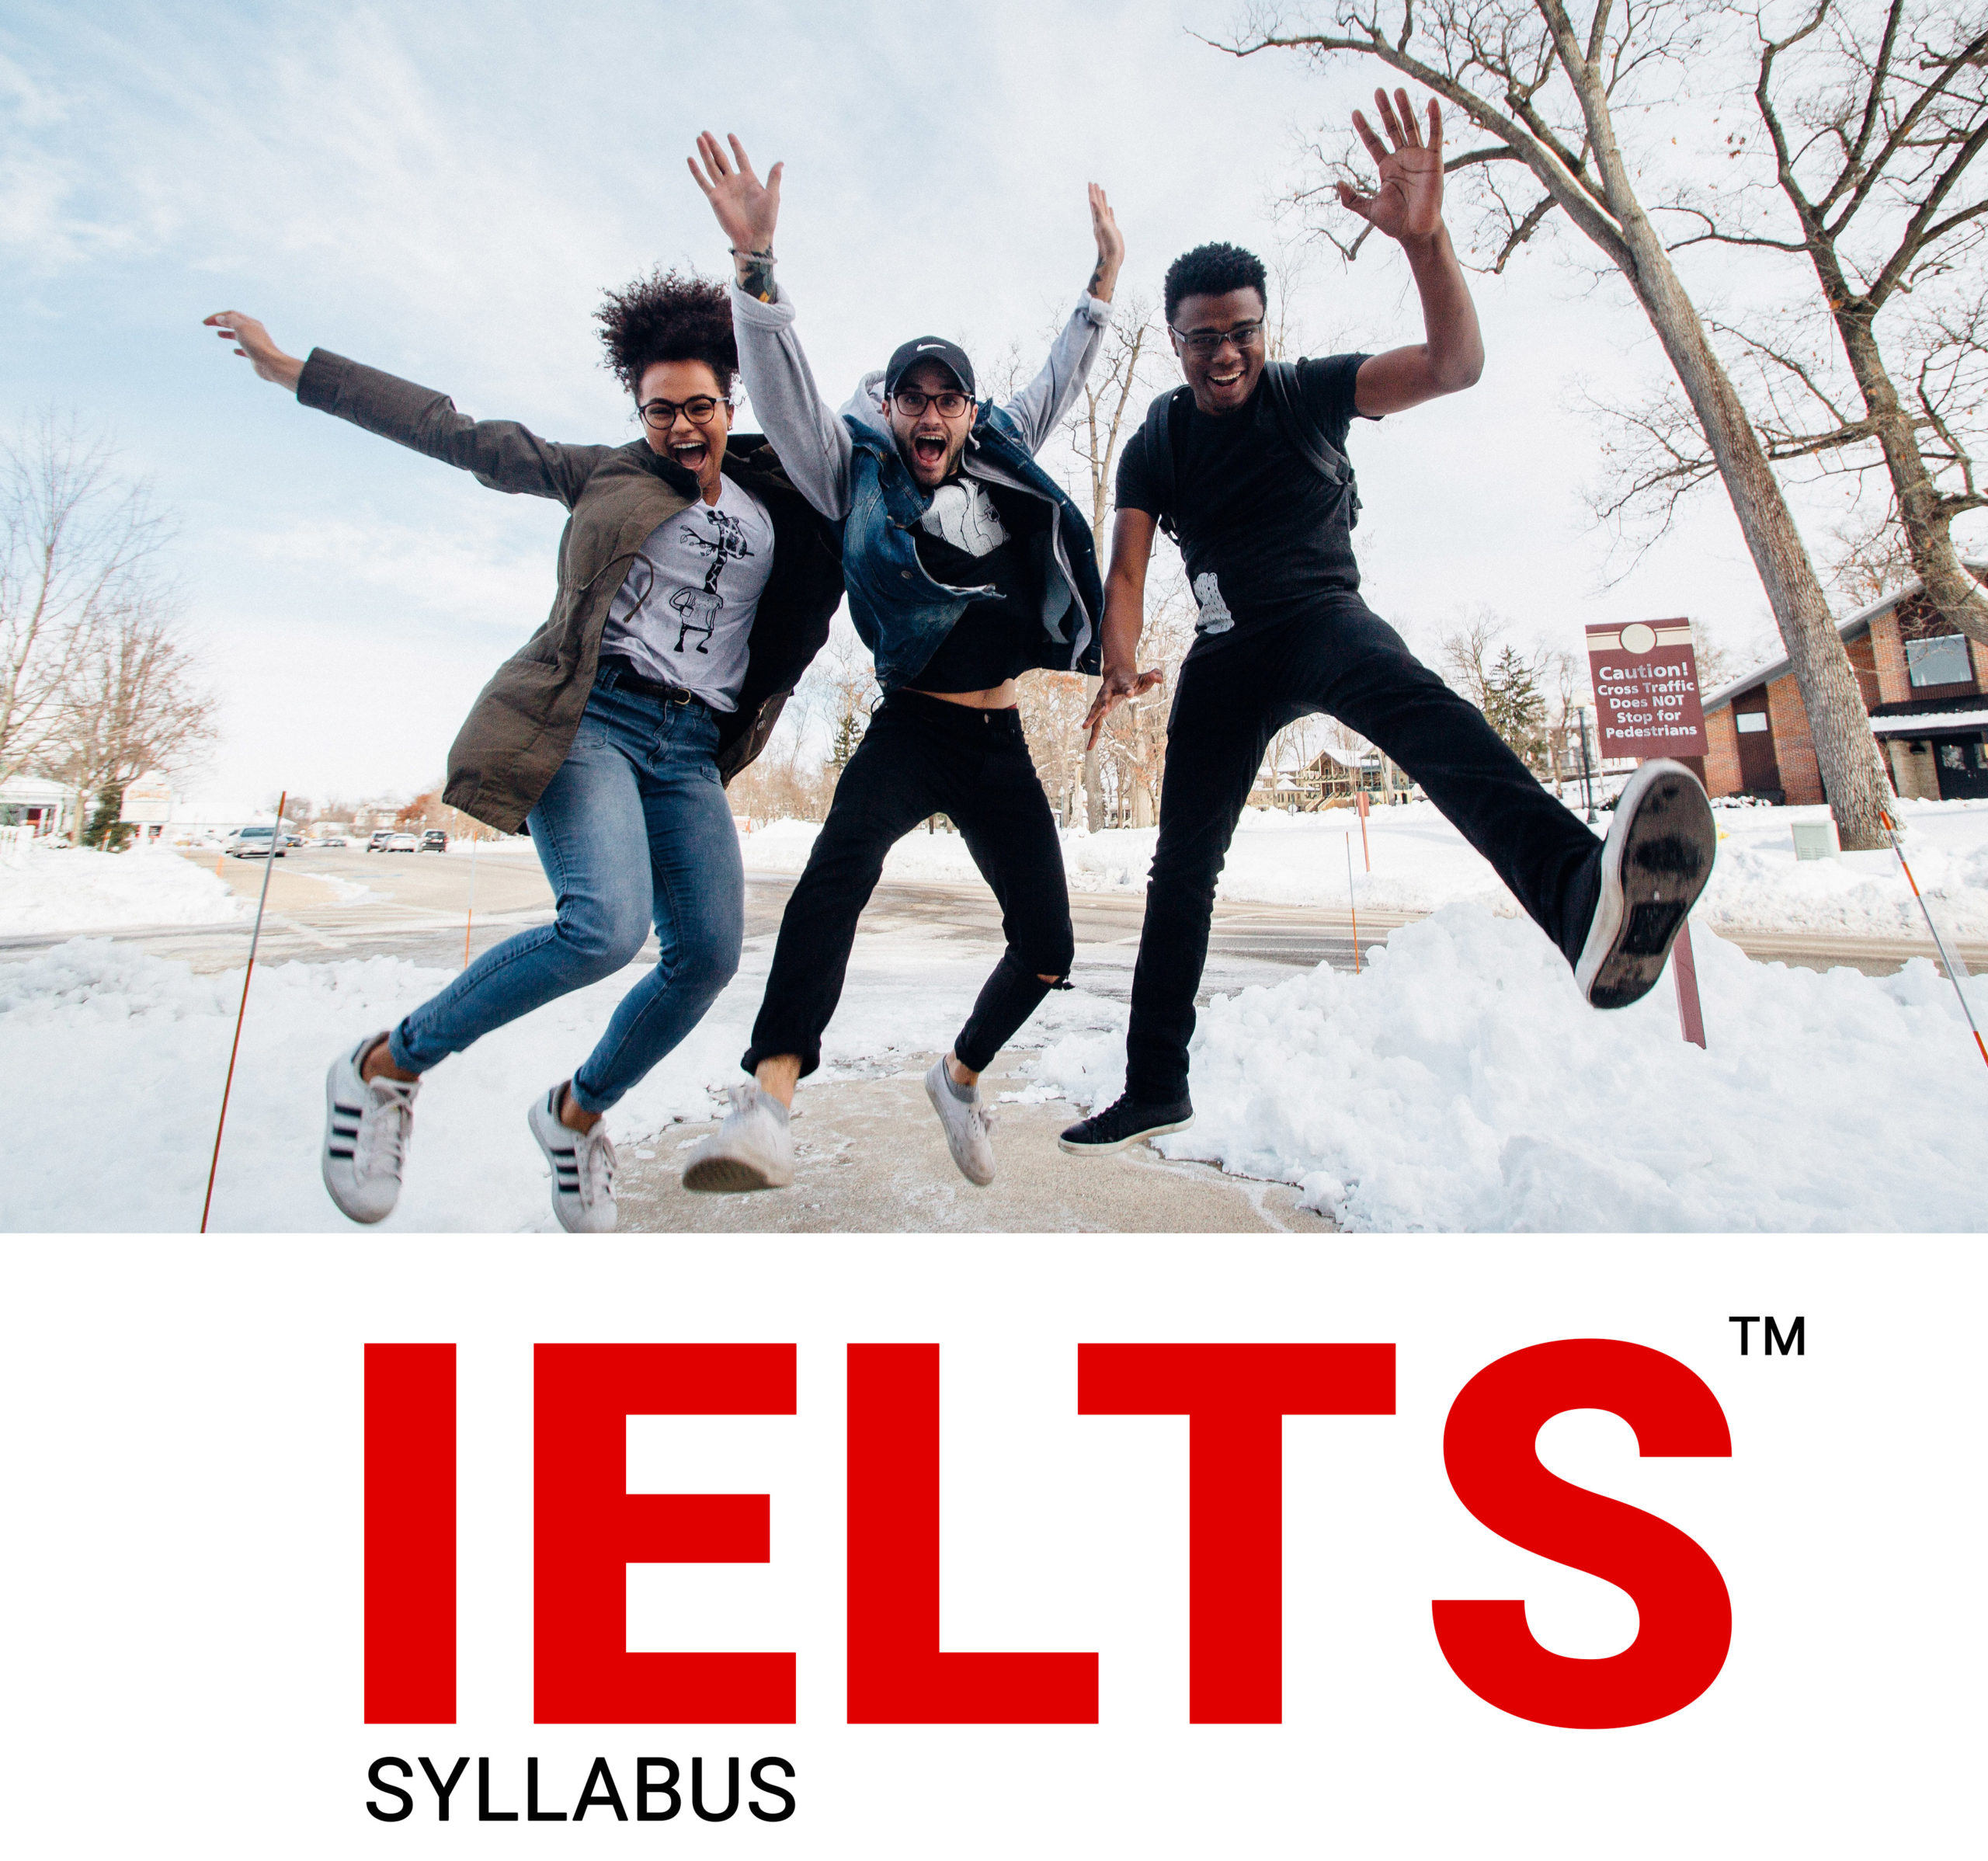 Syllabus for IELTS in 2020